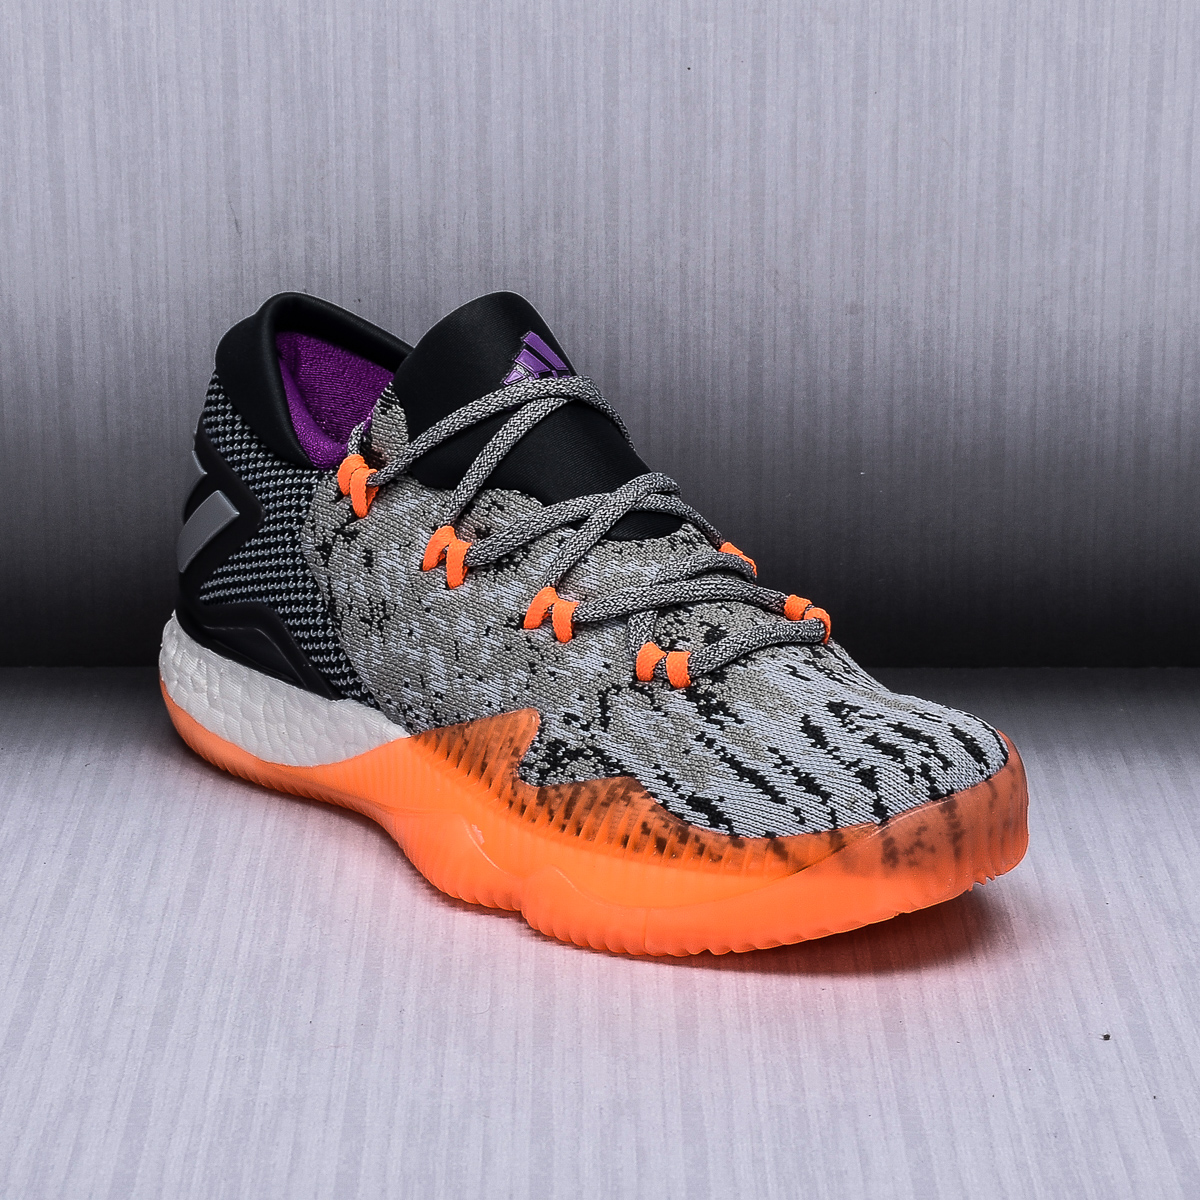 adidas basketball shoes. adidas crazylight boost 2016 low basketball shoes a